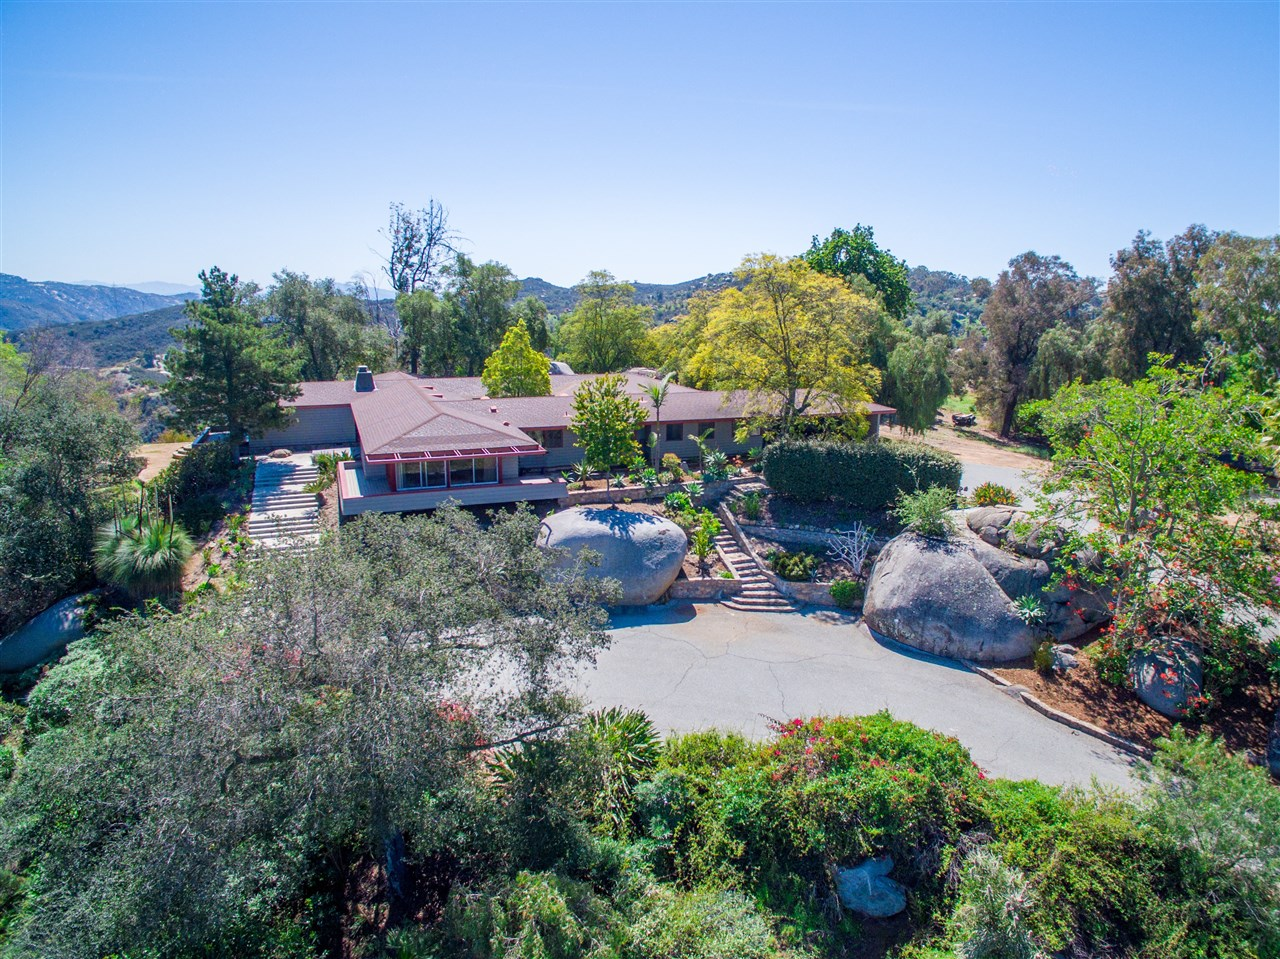 10283 Hidden Meadows Rd, Escondido, CA 92026